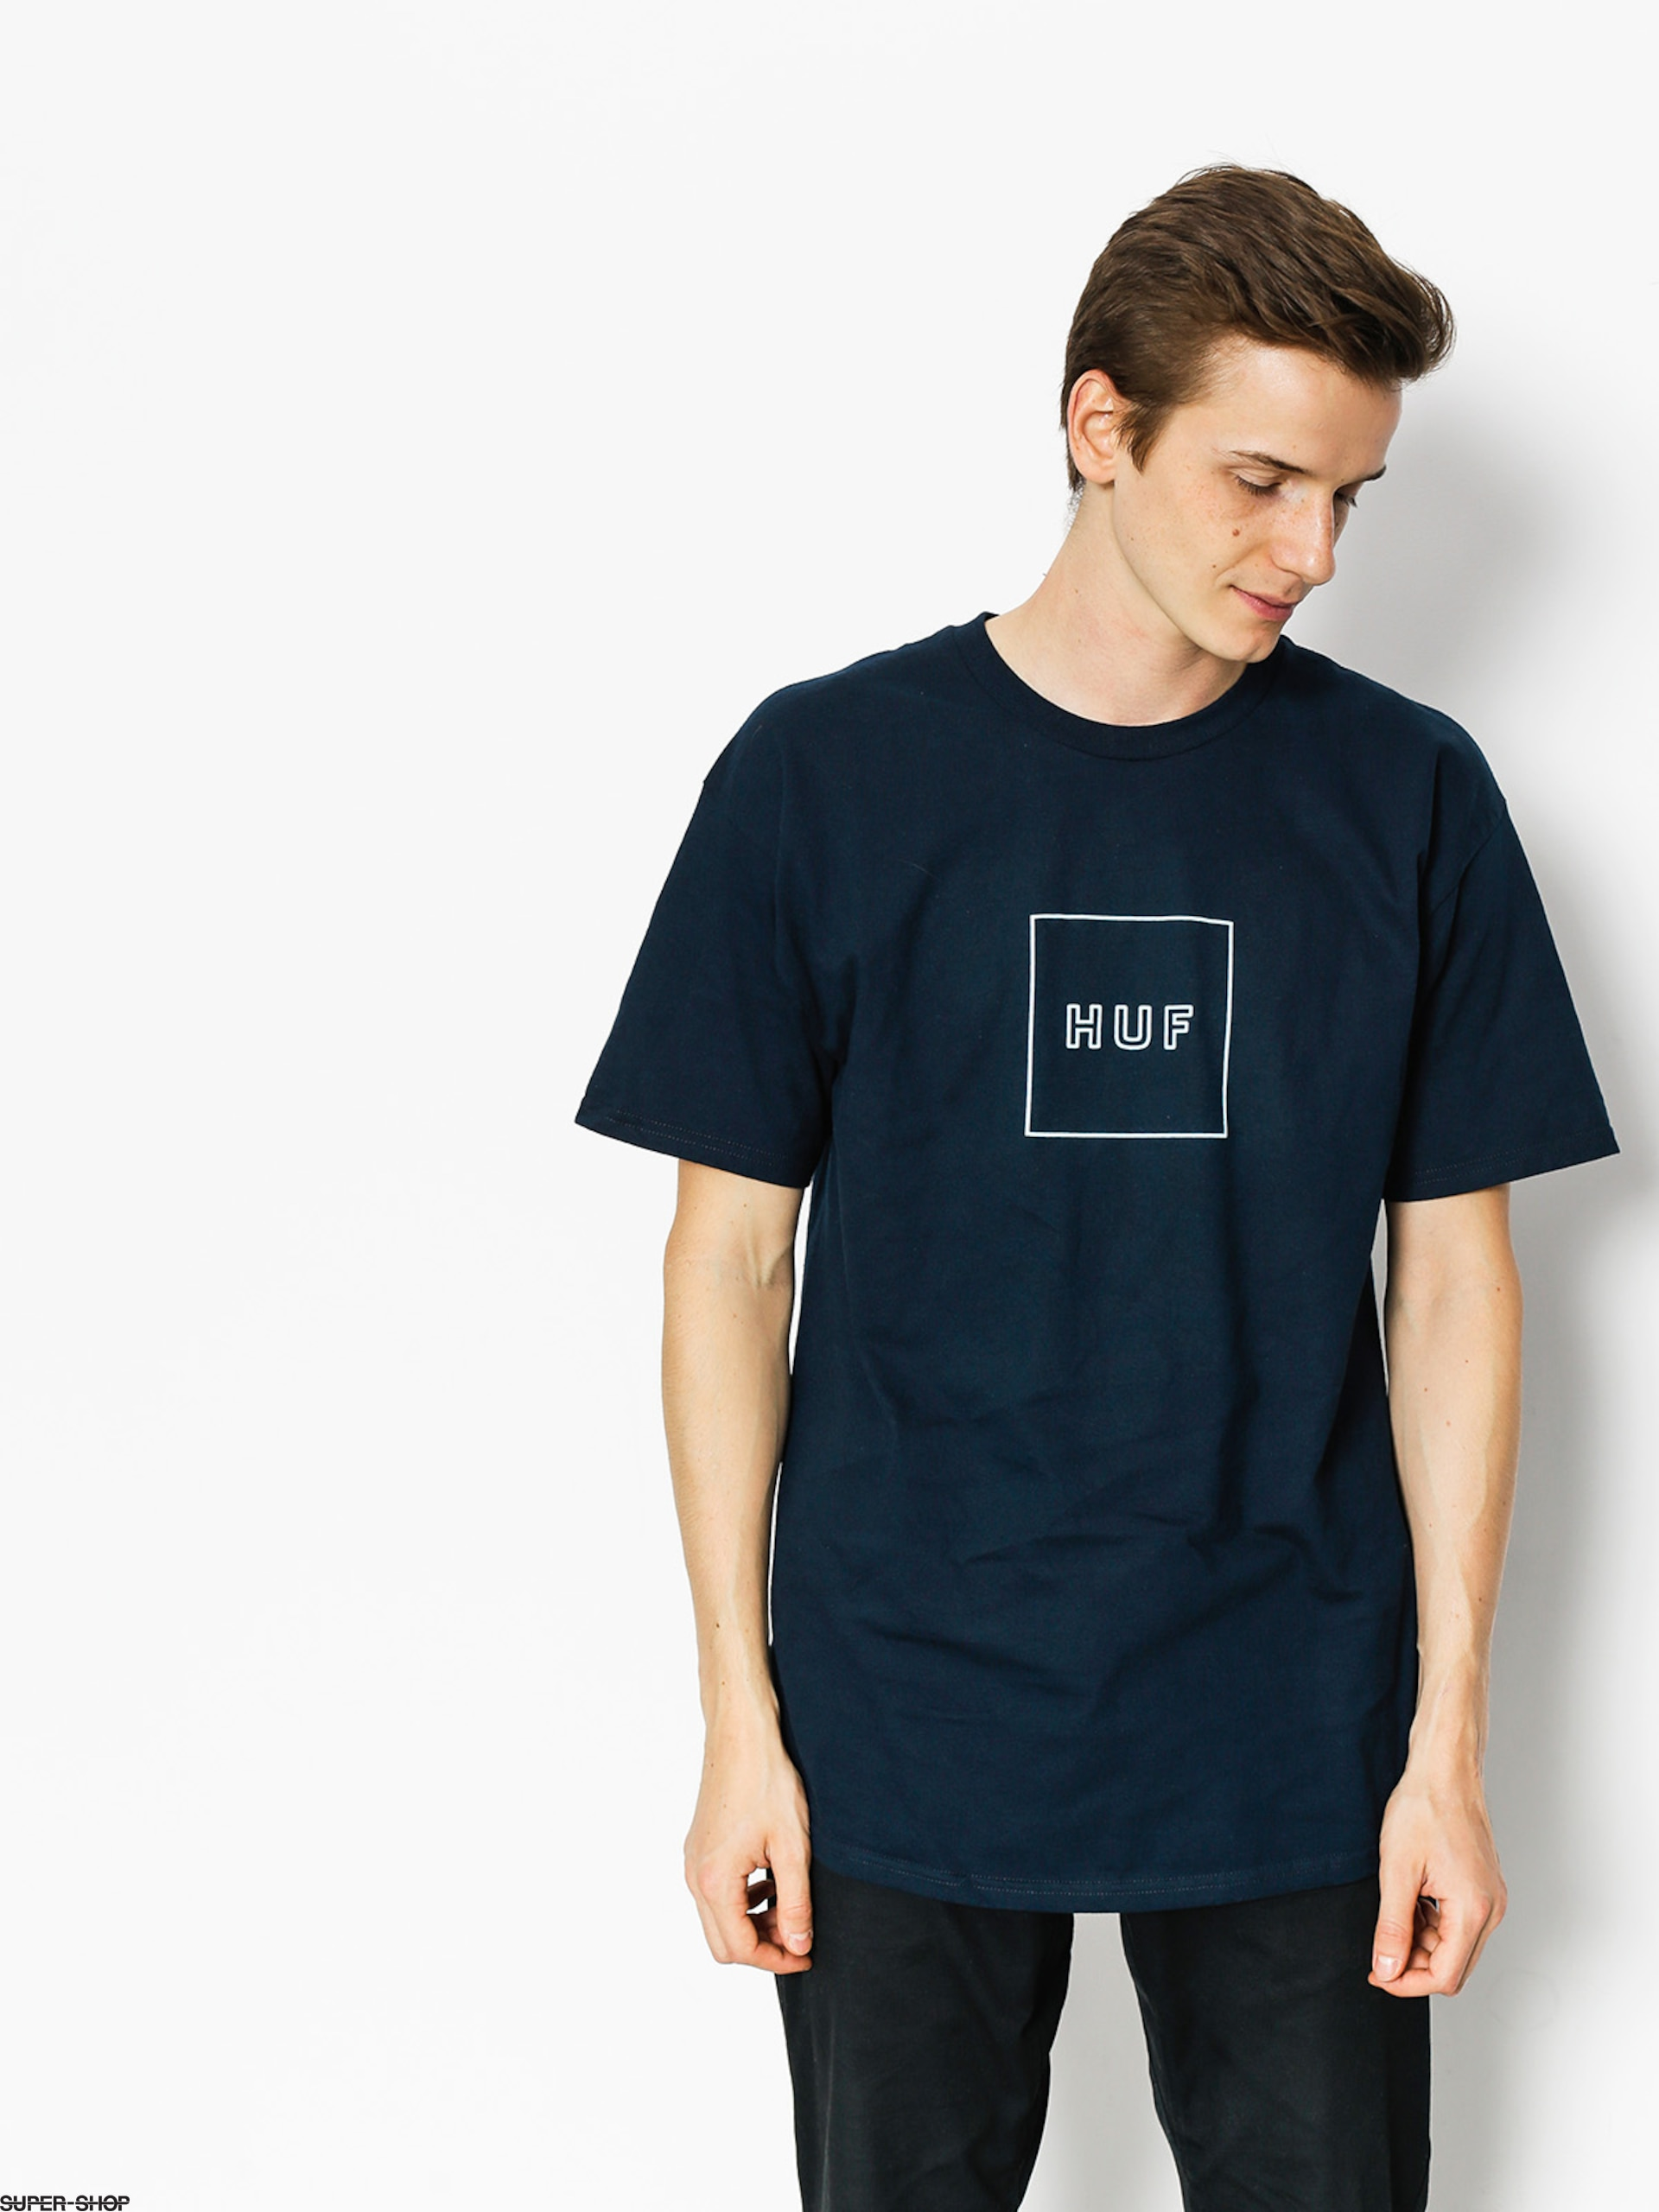 HUF T-Shirt Outline Box Logo